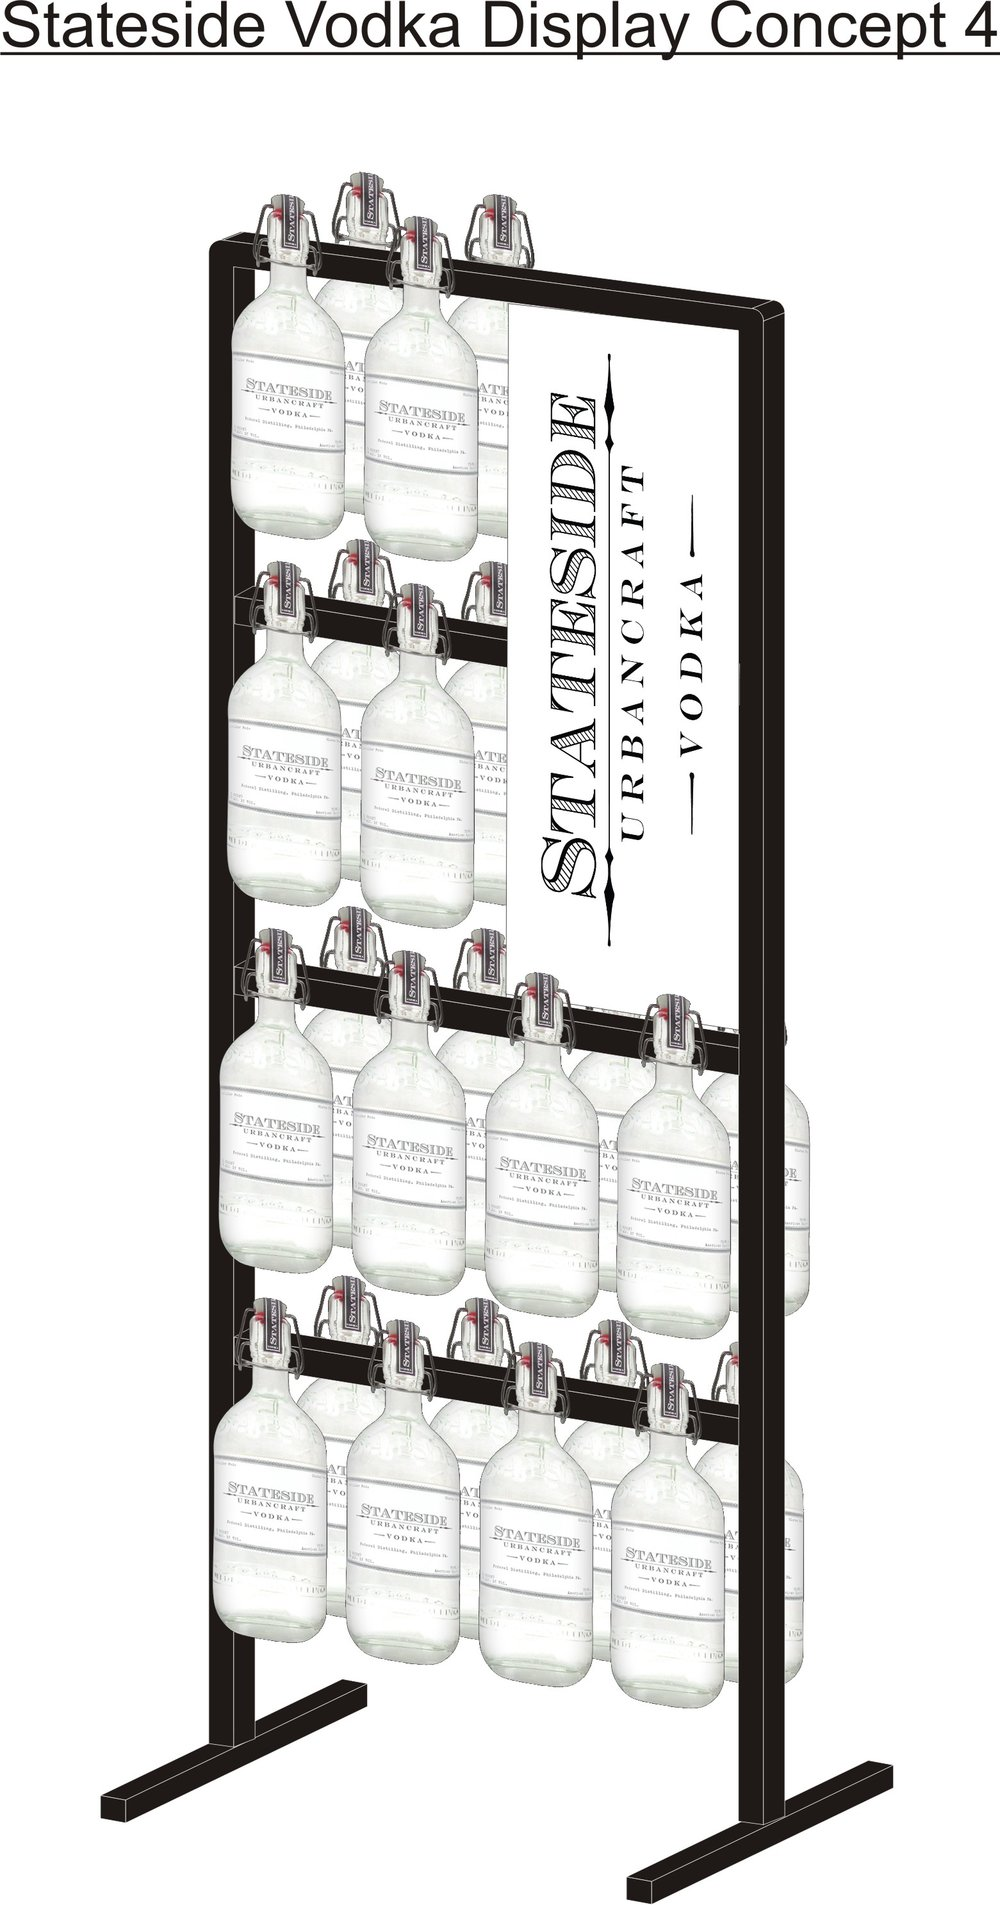 Stateside Vodka Display Concept 4.jpg